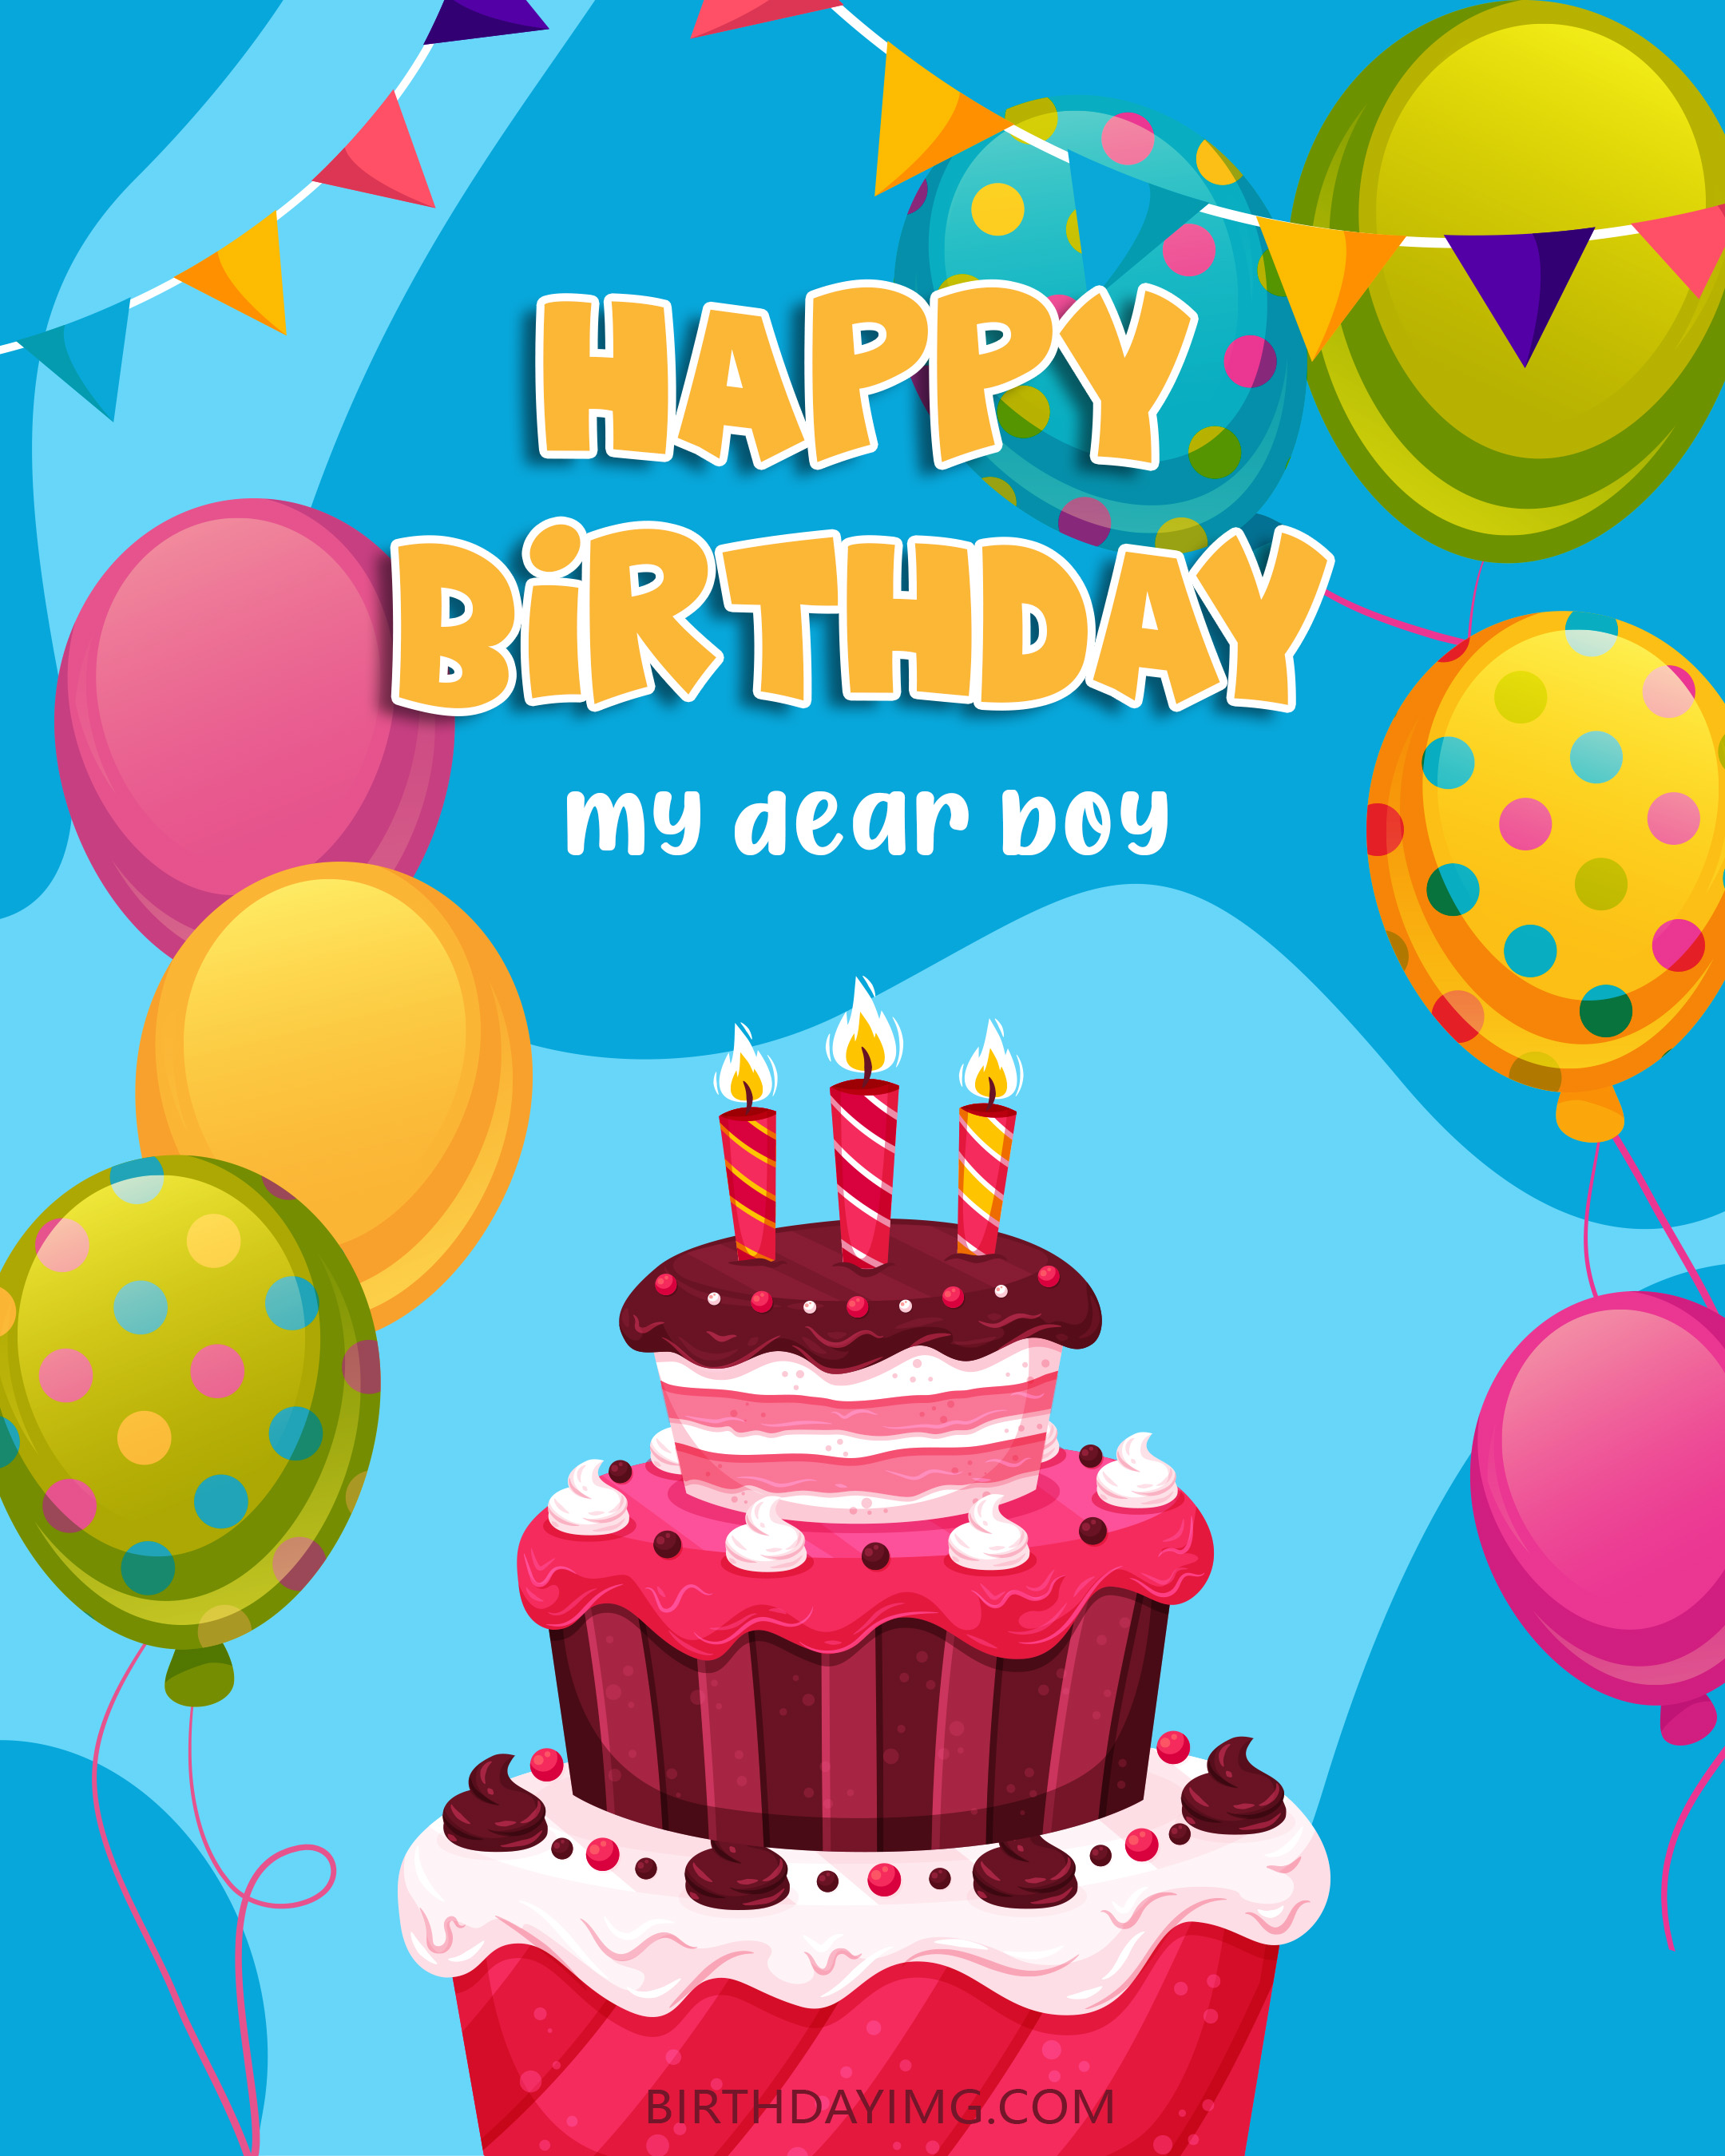 Free Happy Birthday Image For Boy With Cake And Balloons - birthdayimg.com